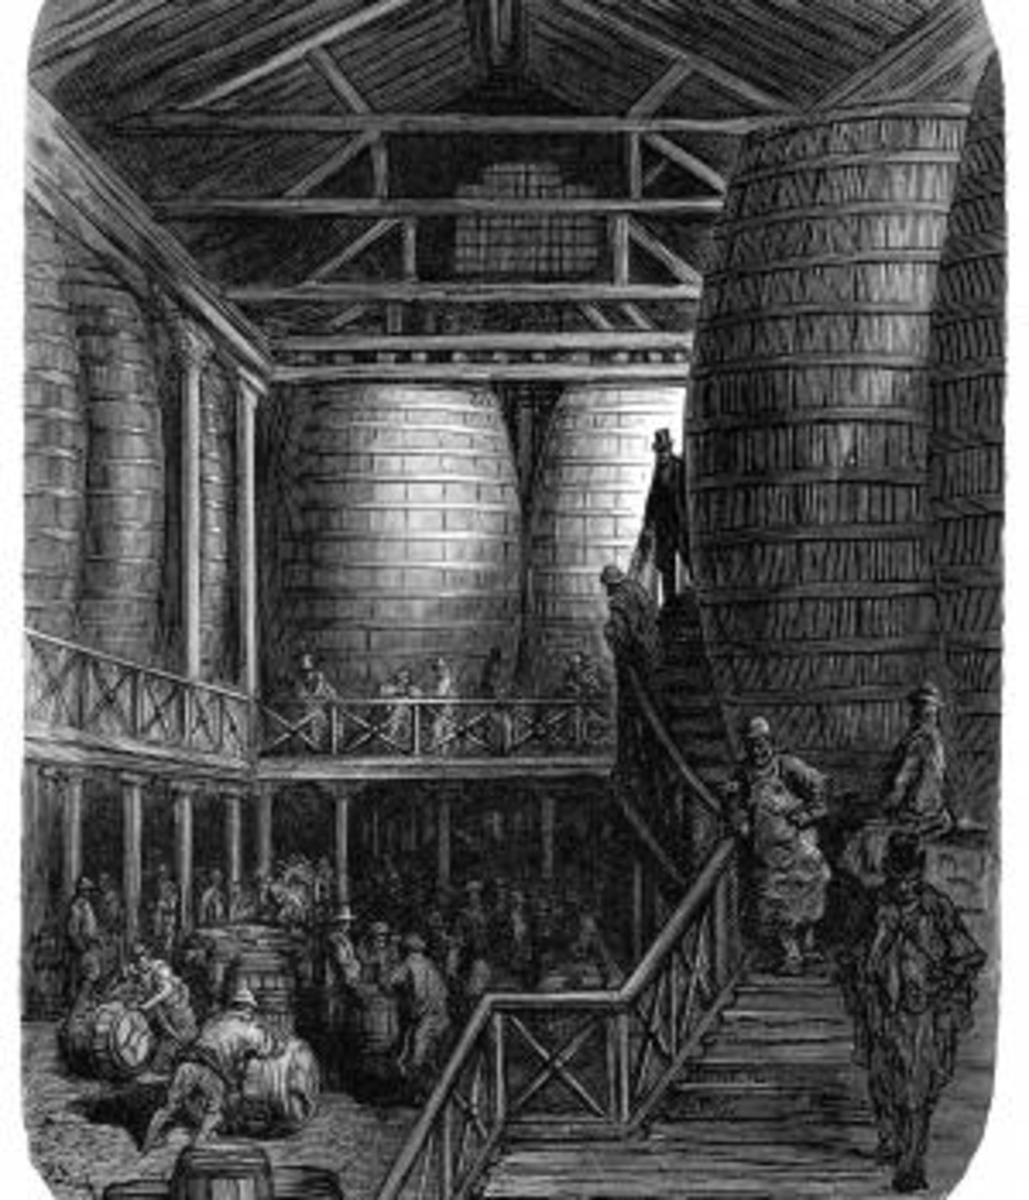 Engraving showing interior of 19th century London brewery. (Credit: duncan1890/iStockphotos.com)